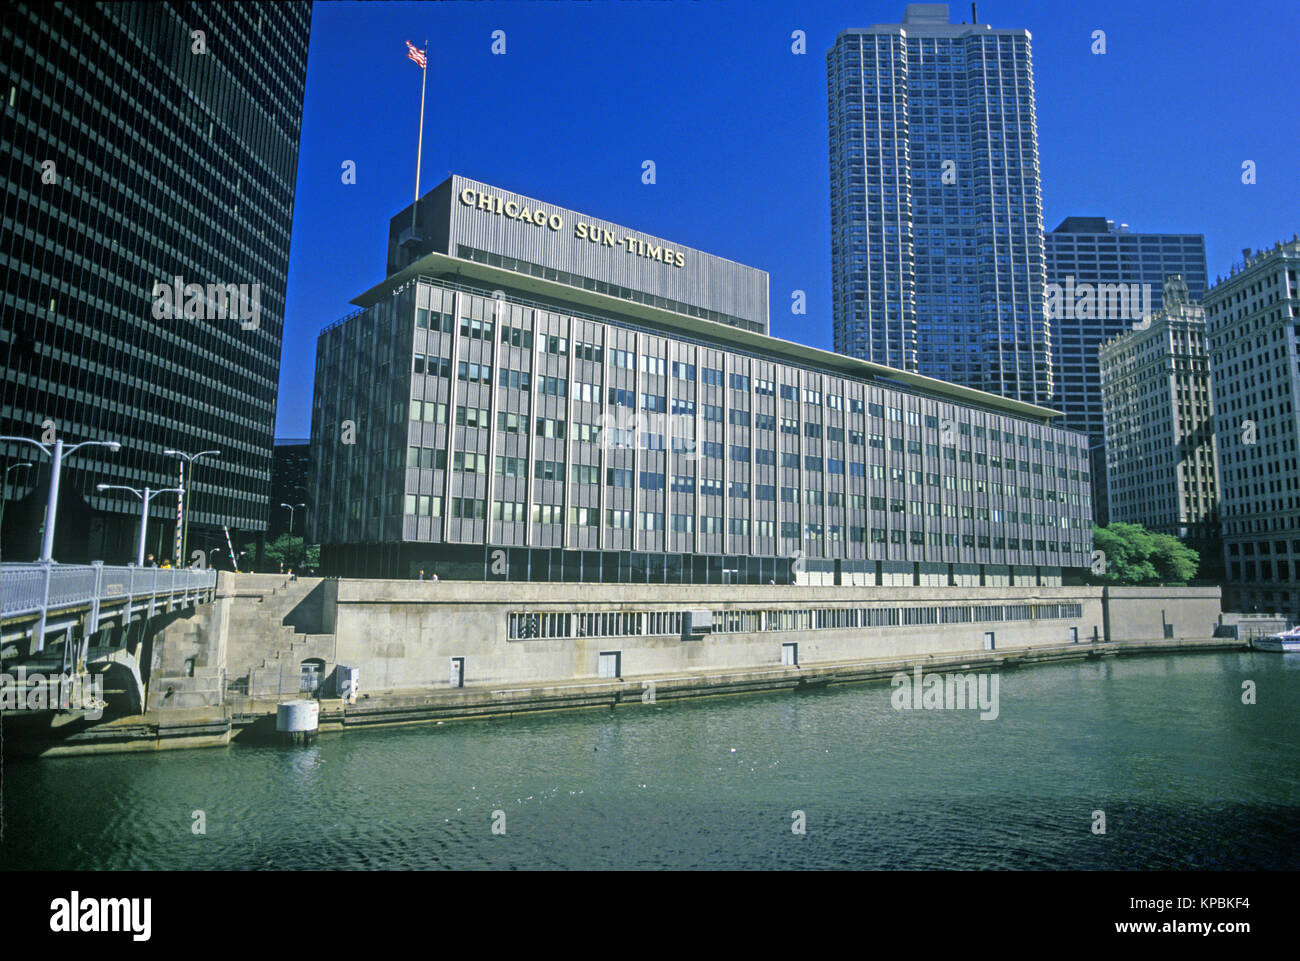 1988 HISTORICAL CHICAGO SUN TIMES NEWSPAPER BUILDING THE LOOP CHICAGO ILLINOIS USA - Stock Image